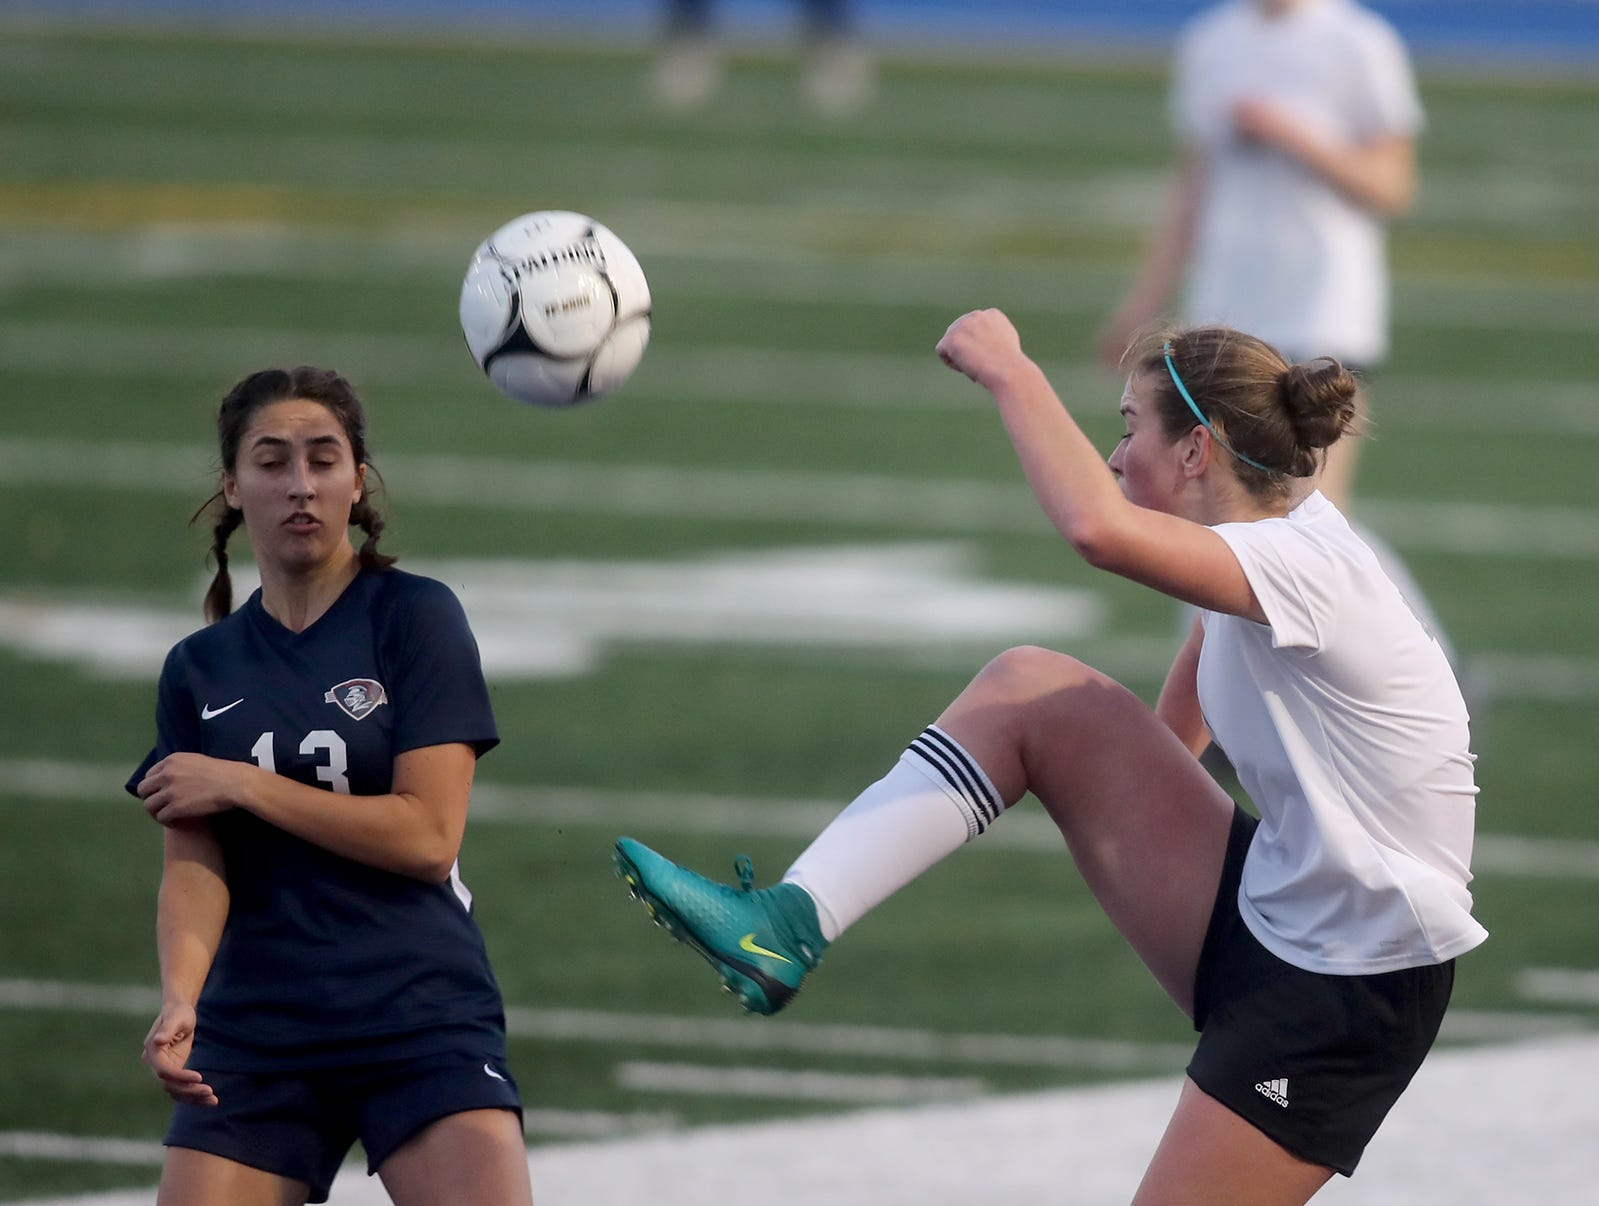 Klahowya lost to King's Way on penalty kicks in overtime in the 2018 Girls Soccer State Championship 1A semifinal game at Shoreline Stadium on Friday, November 16, 2018.